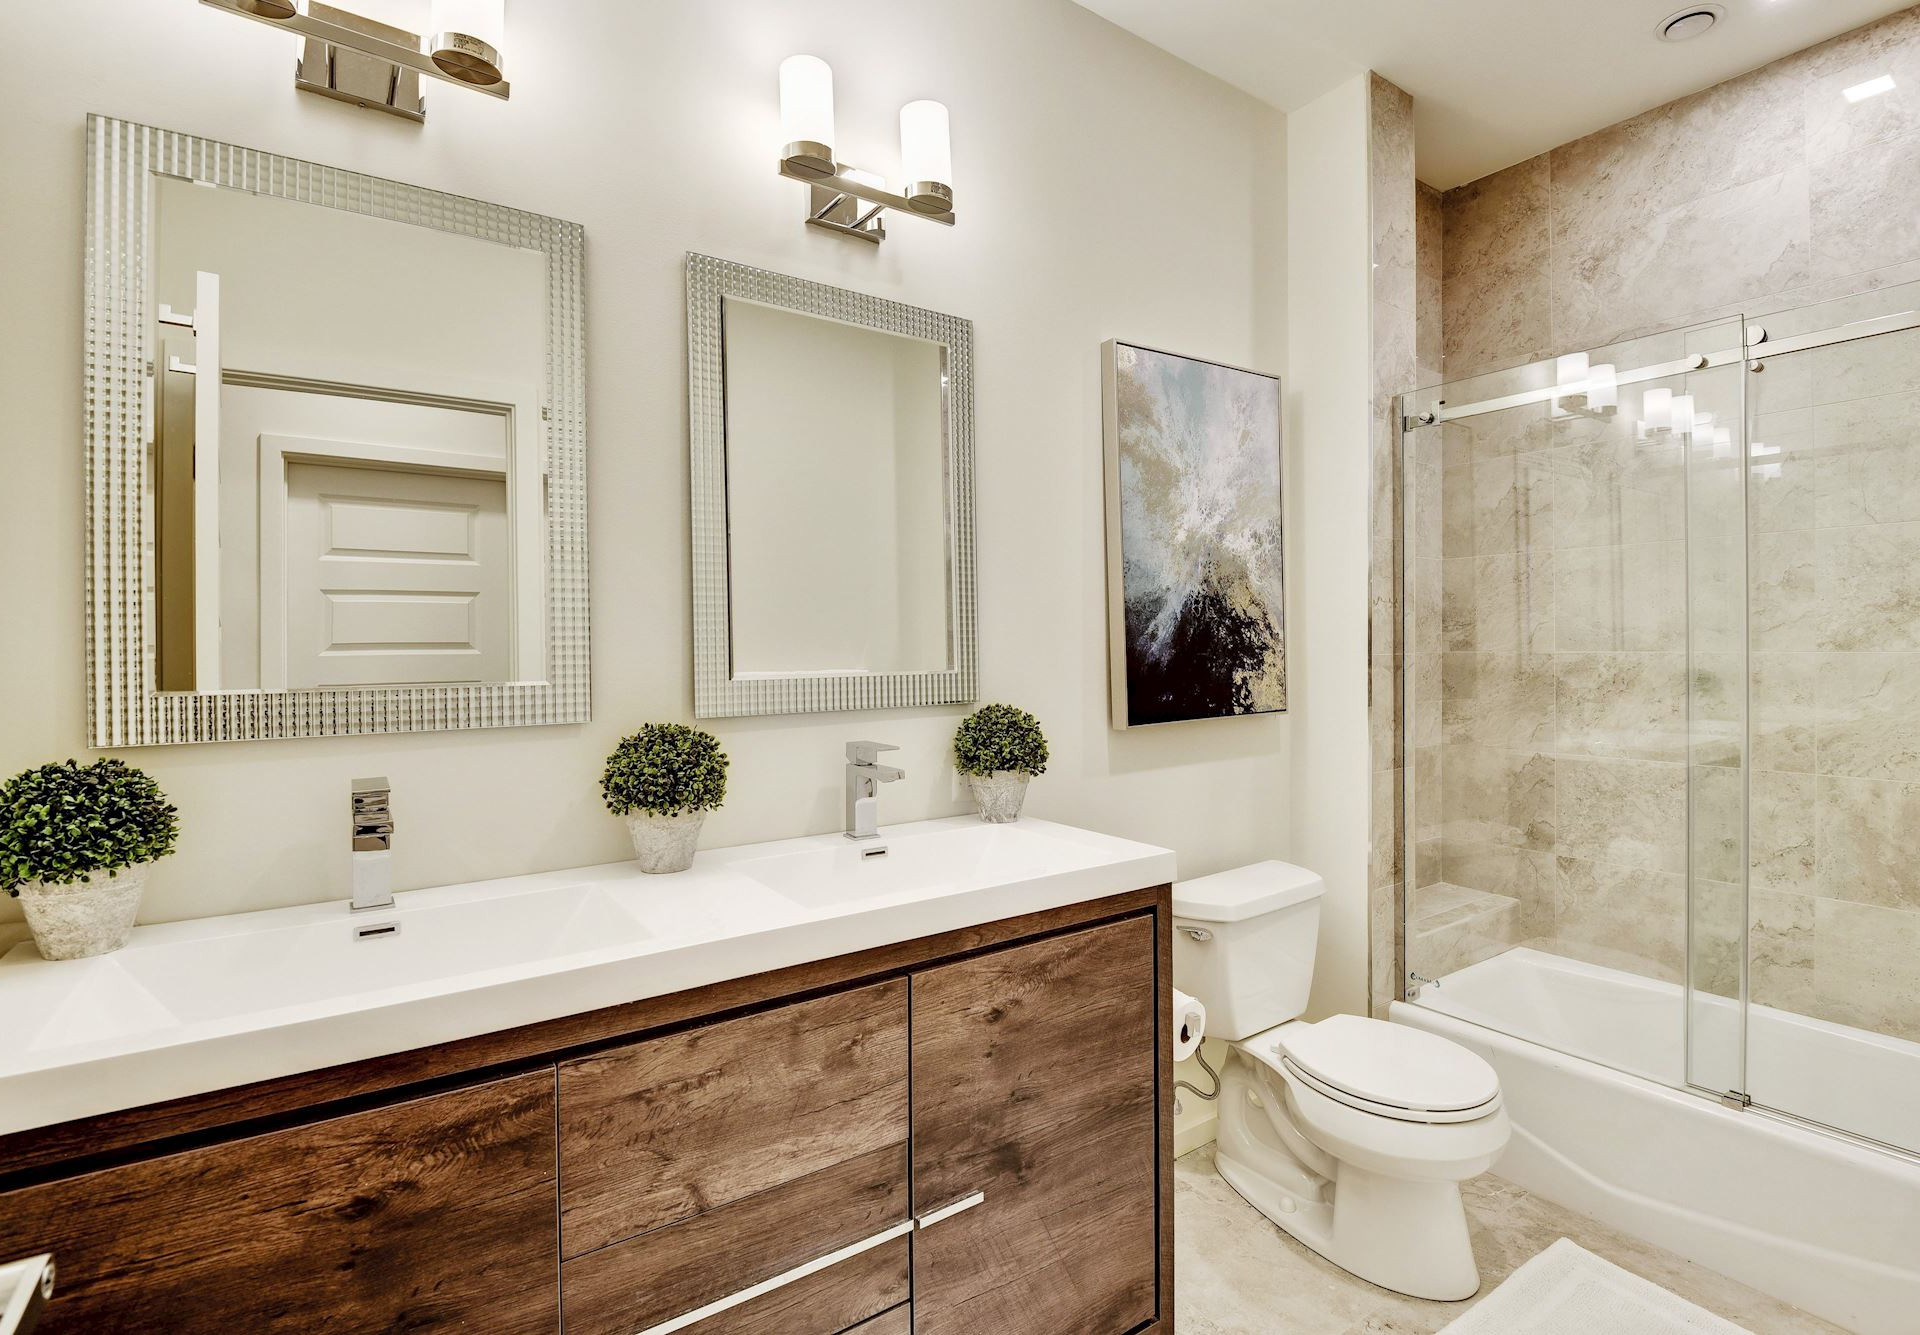 Penthouse bath features dual vanity and frameless tub enclosure